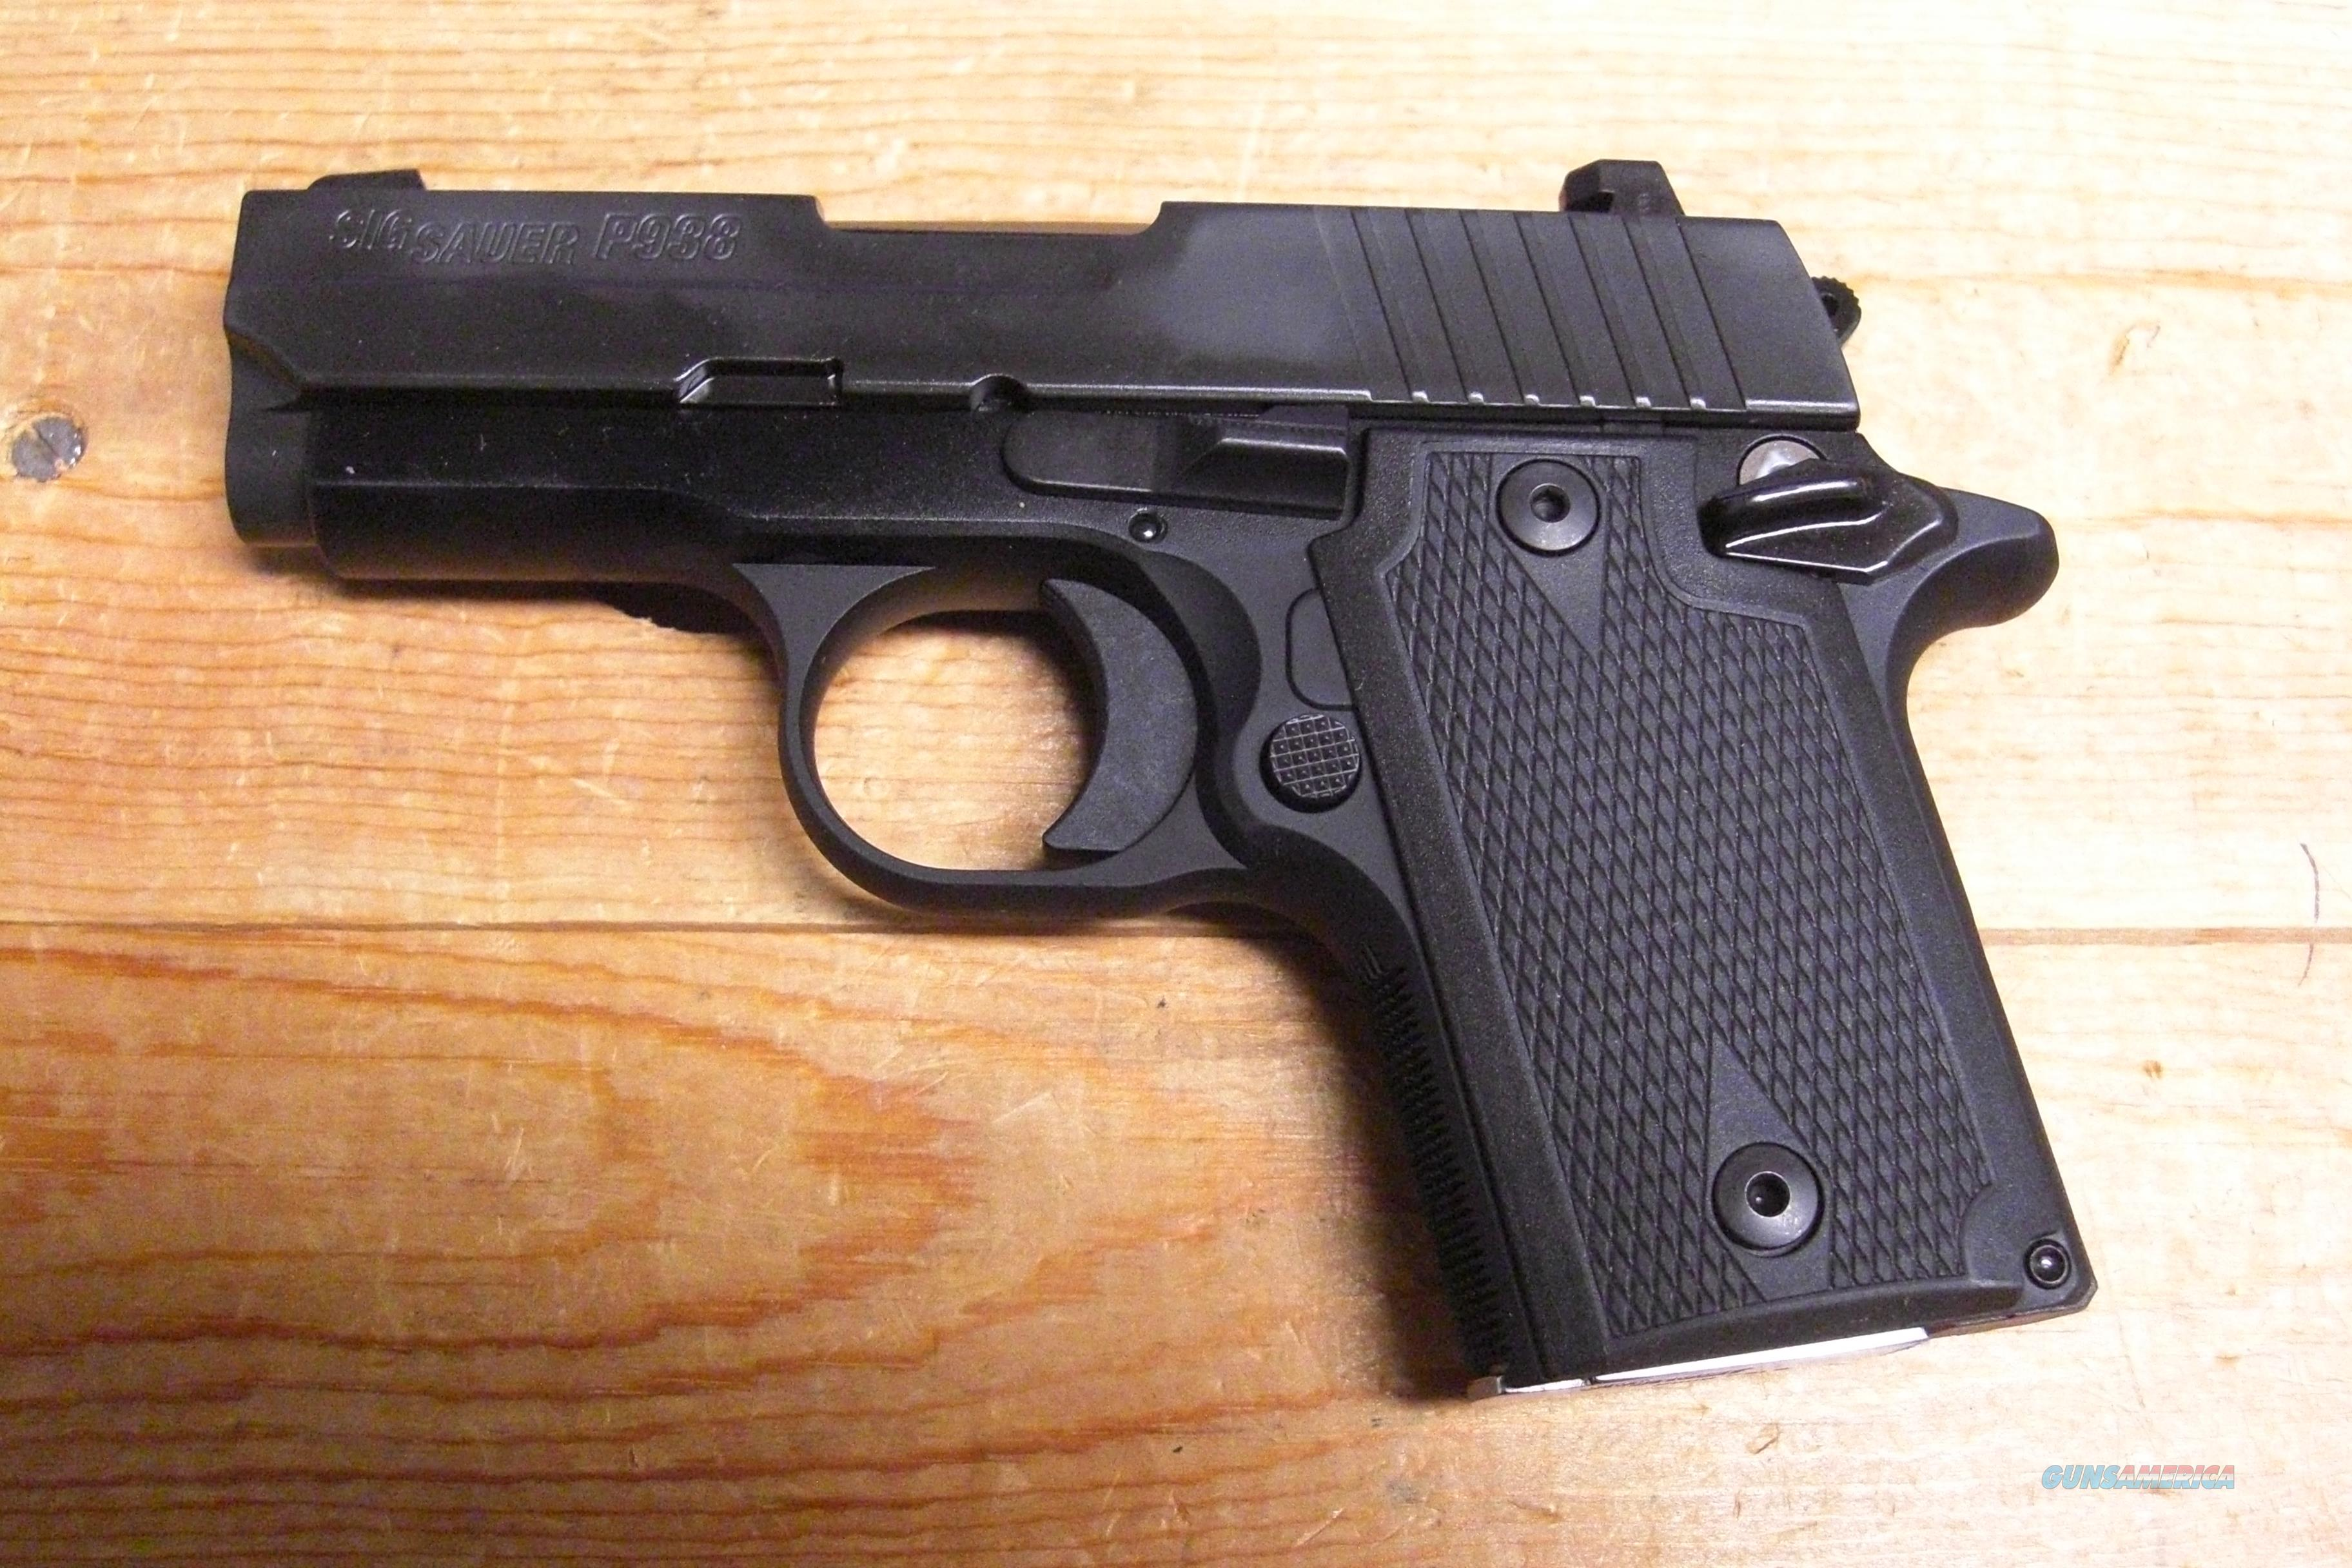 Sig Sauer P938 w/night sights, hard rubber grips, all black  Guns > Pistols > Sig - Sauer/Sigarms Pistols > P938